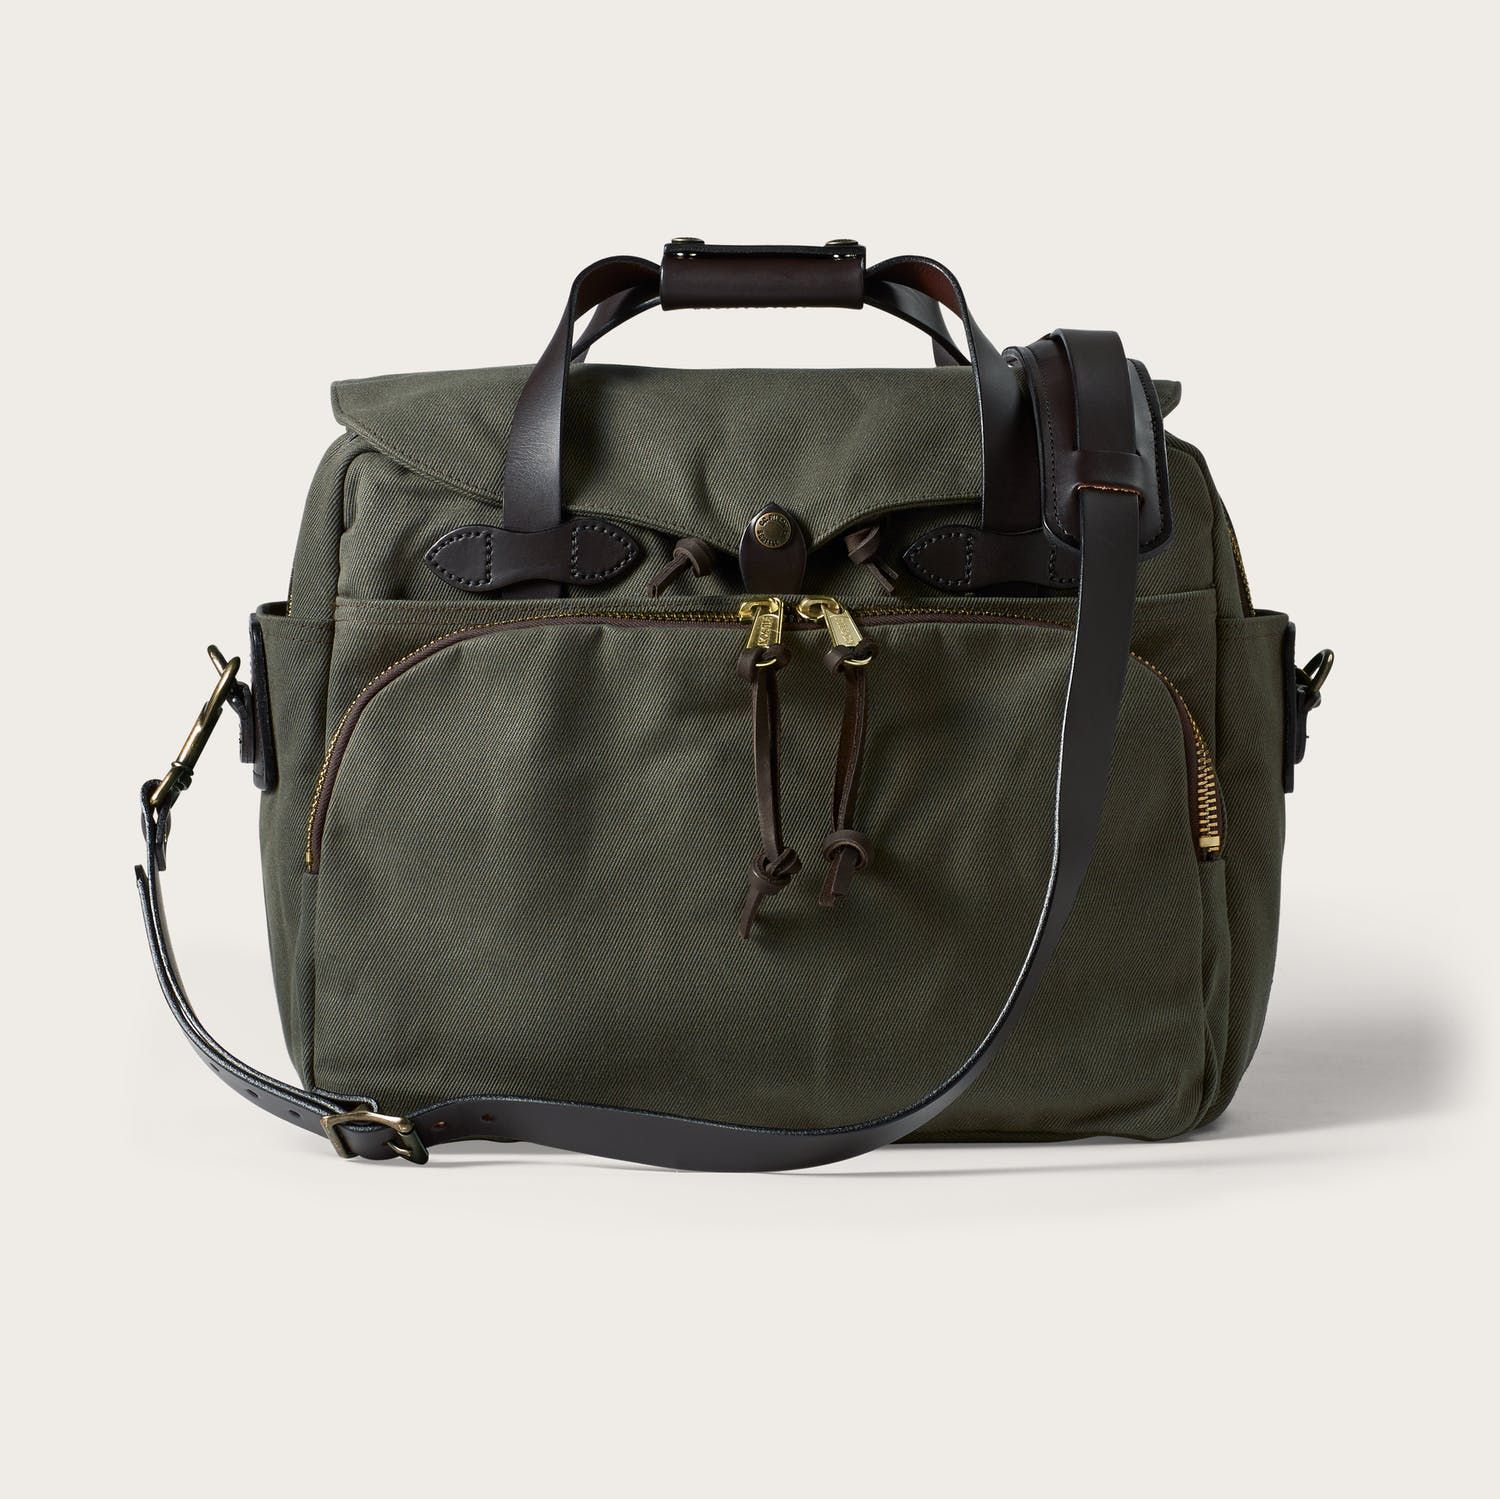 Rugged Twill Padded Computer Bag In 2020 Bags Laptop Briefcase Computer Bags